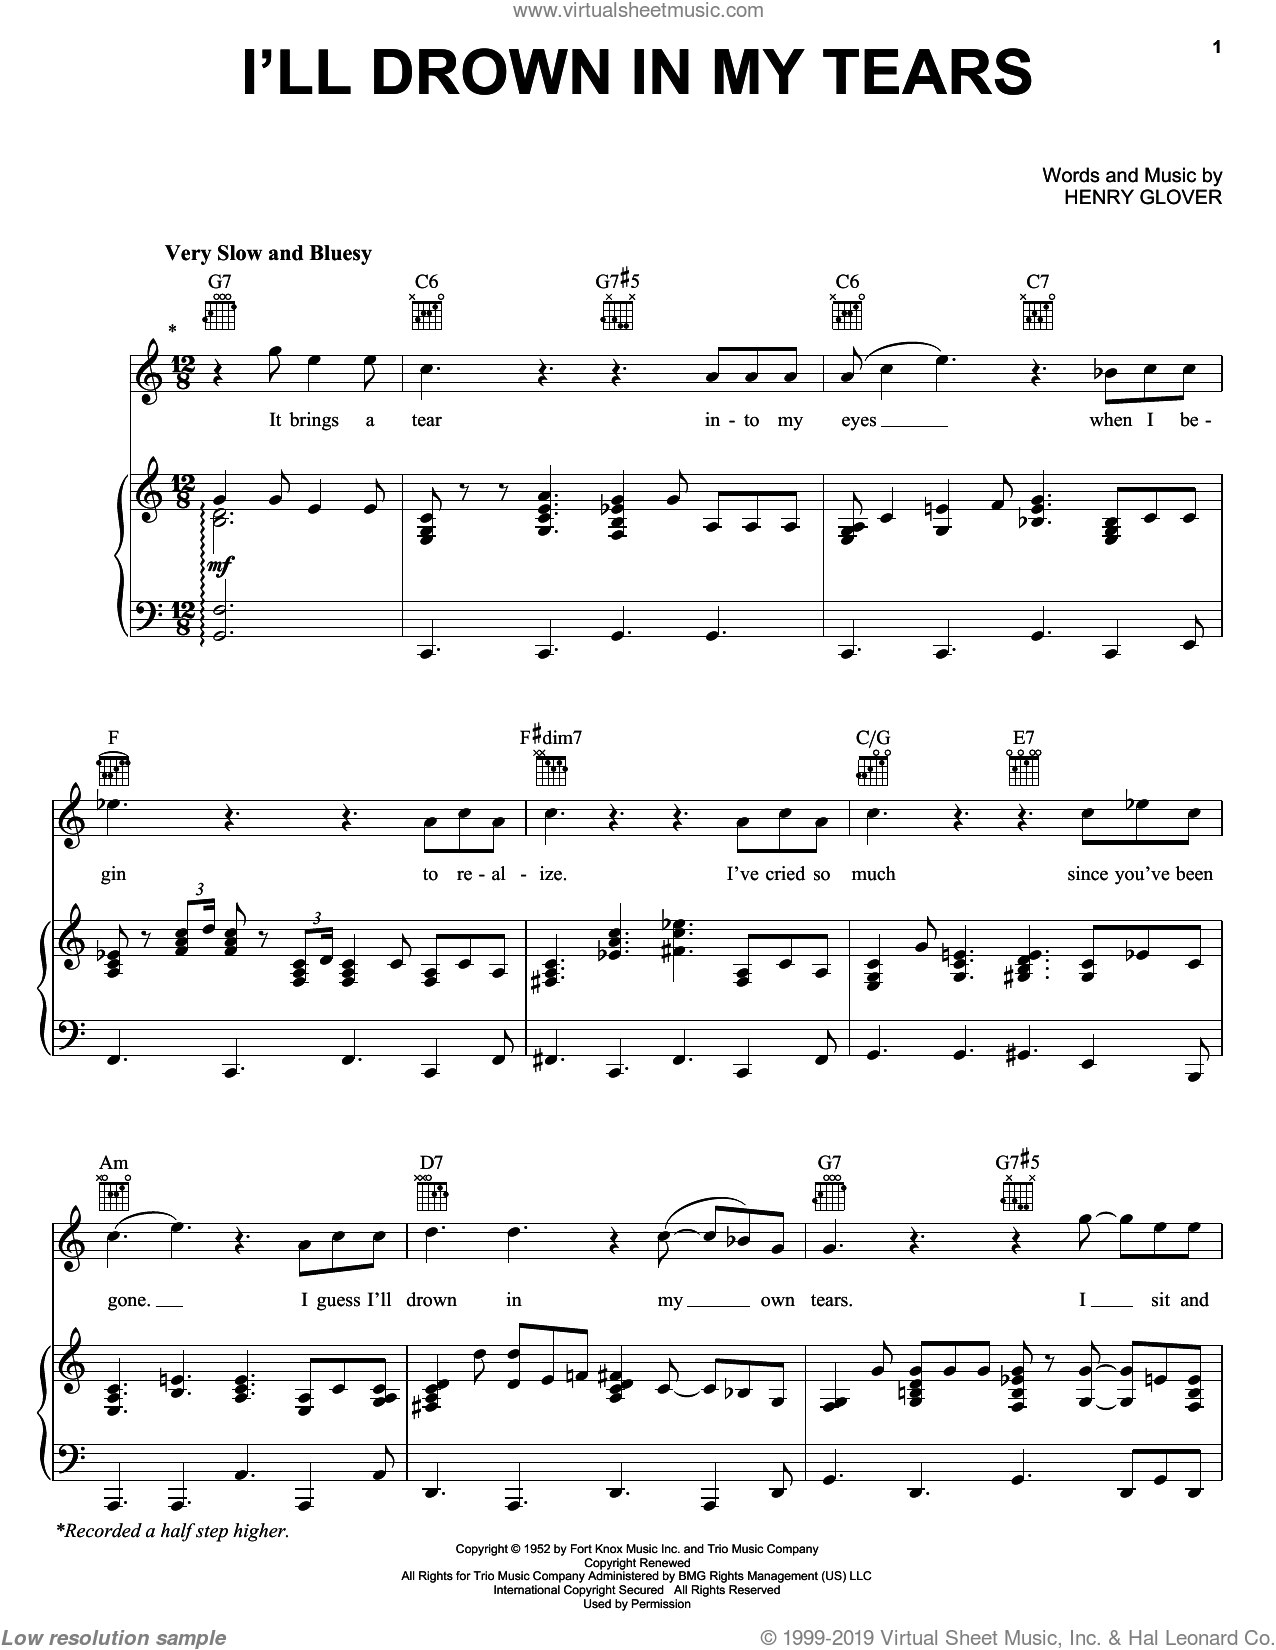 I'll Drown In My Tears sheet music for voice, piano or guitar by Henry Glover